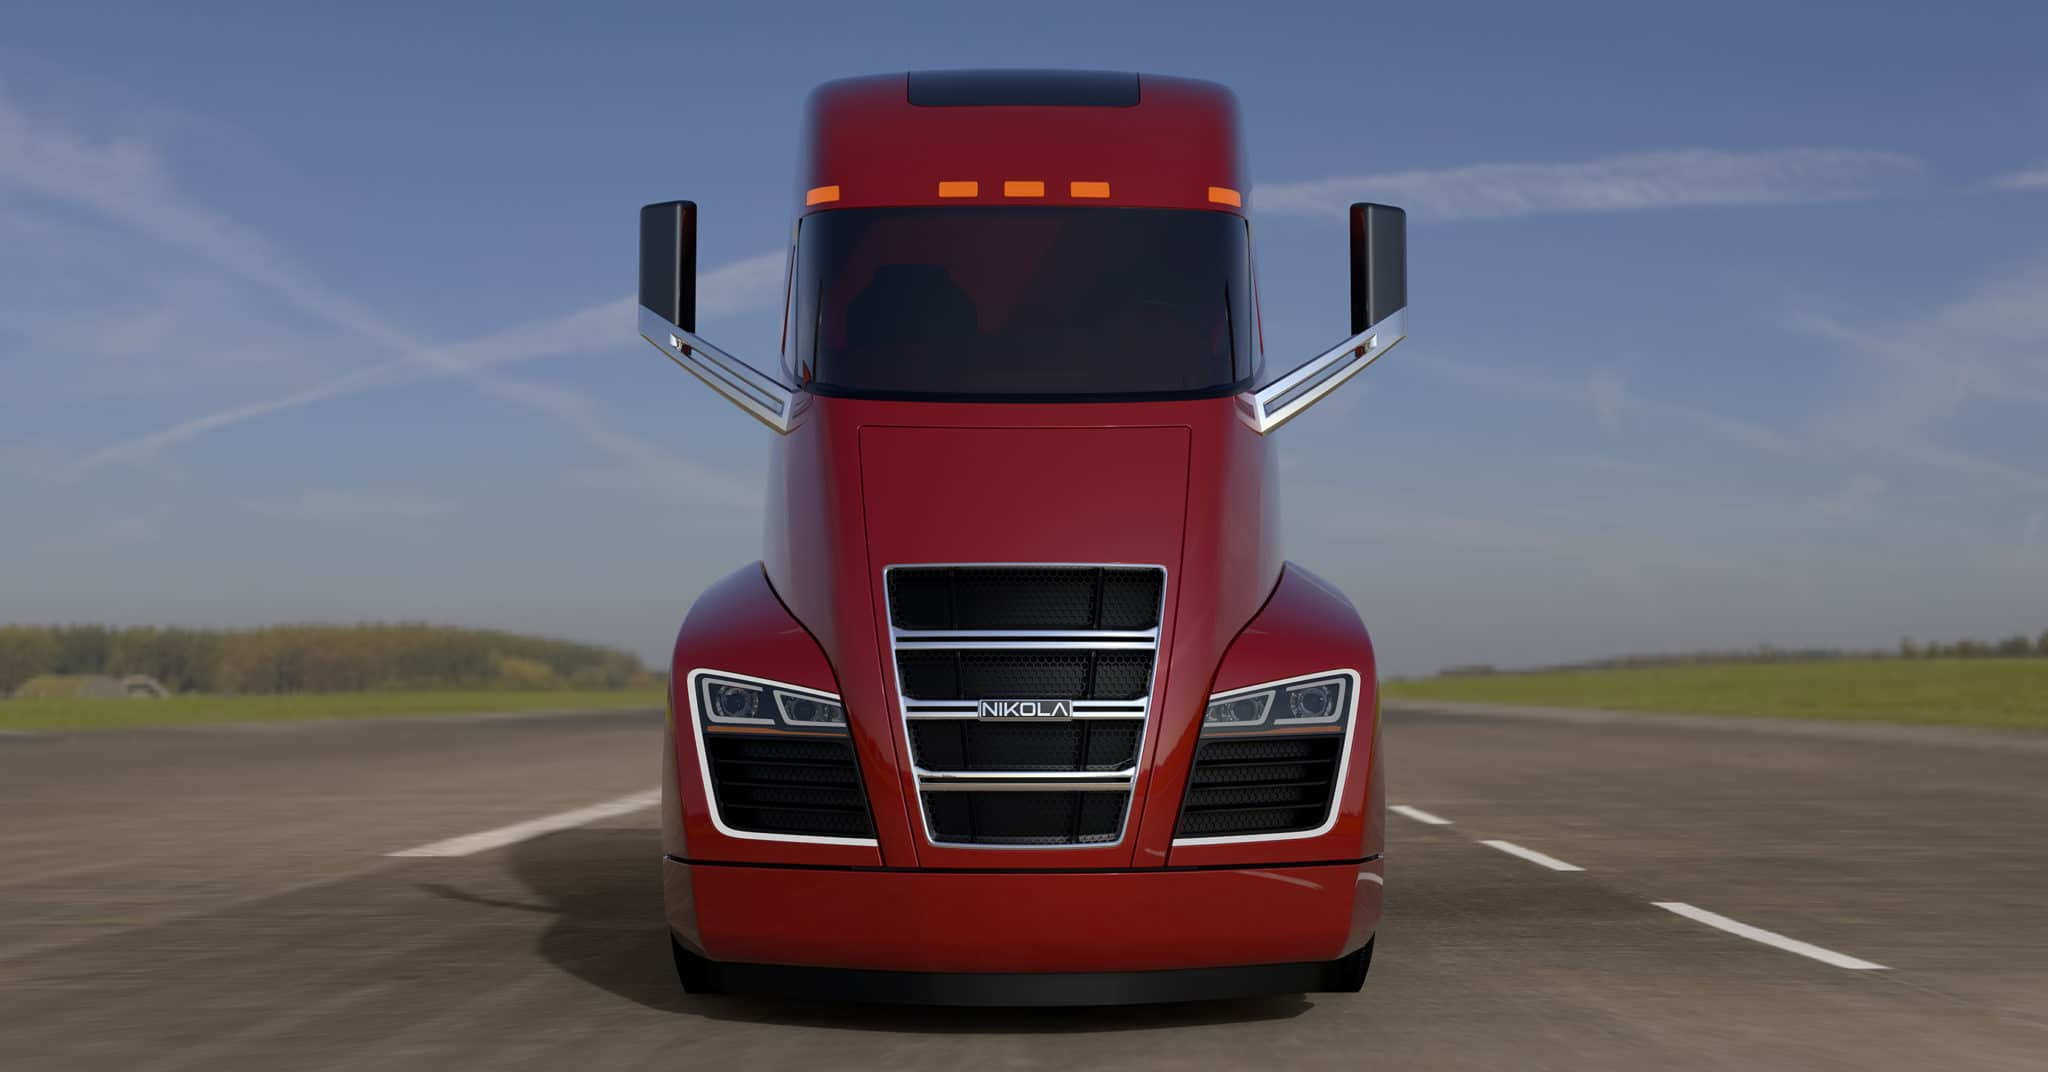 Tipping Point - The 1000km Electric Truck